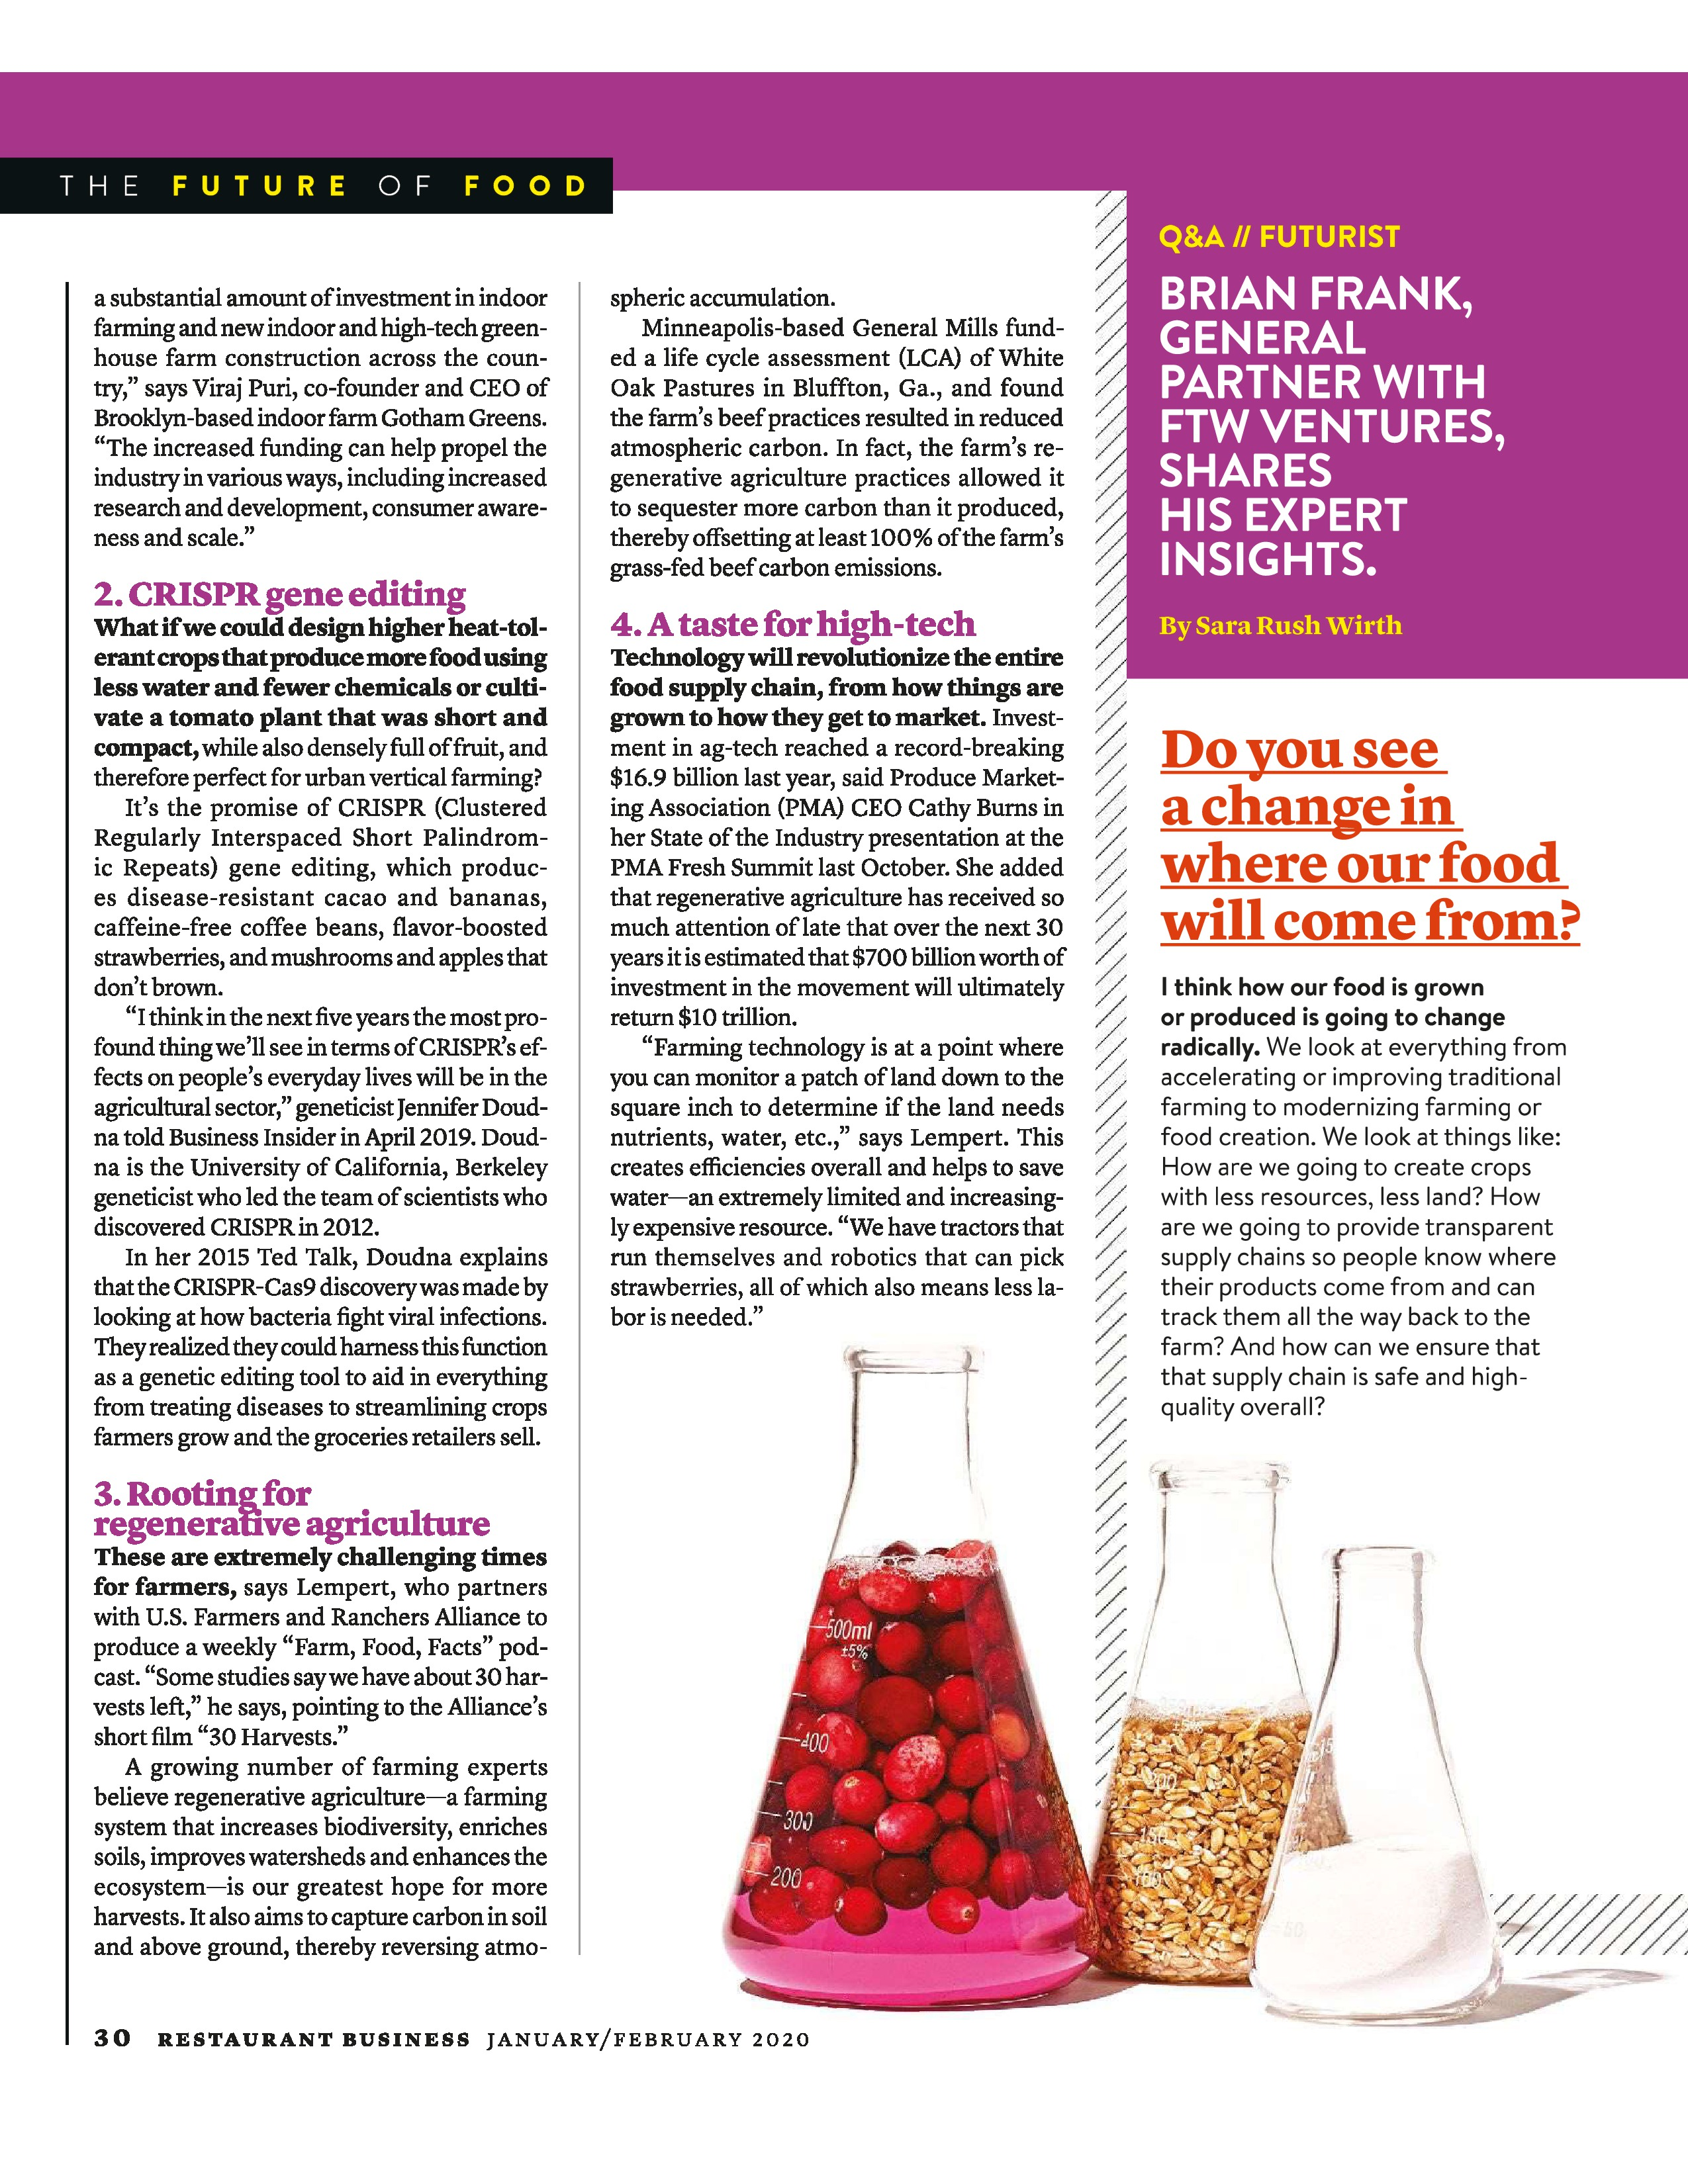 The Future Of Food Restaurant Business February 2020-page-3